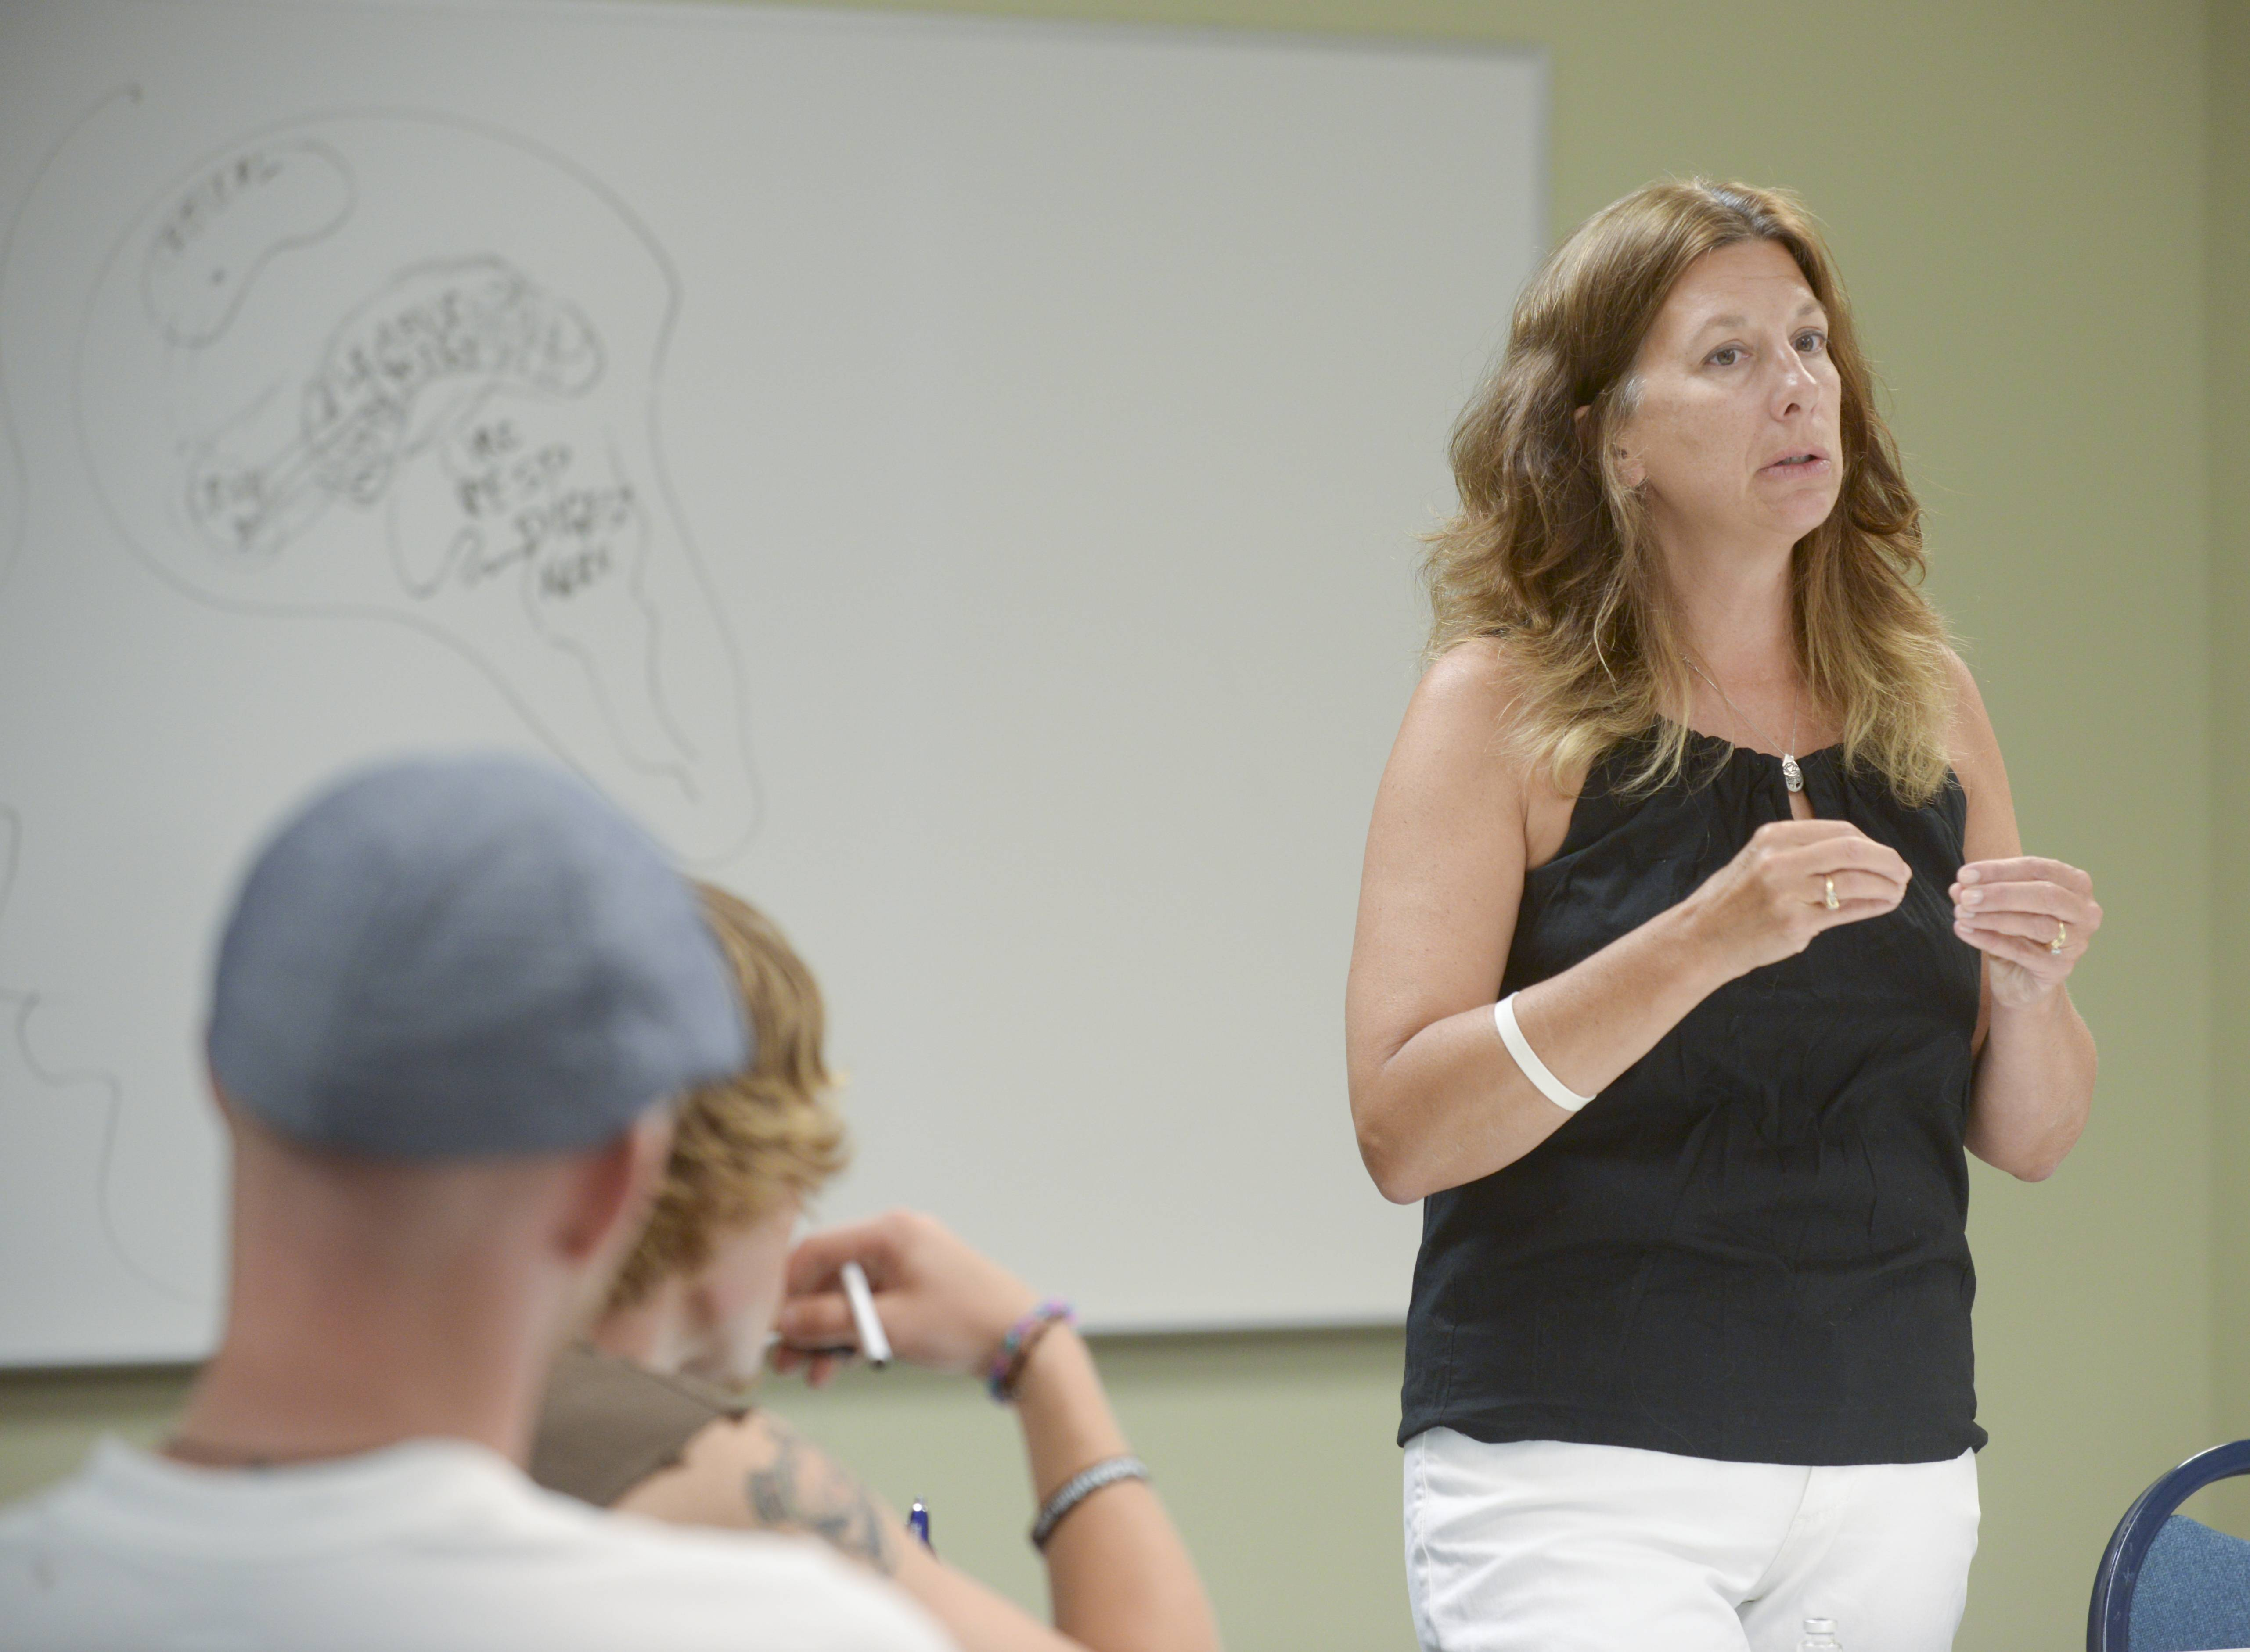 Caroline Kacena of Naperville, whose son died from a heroin overdose, teaches a class Thursday about heroin addiction and how to use Naloxone to stop an overdose.